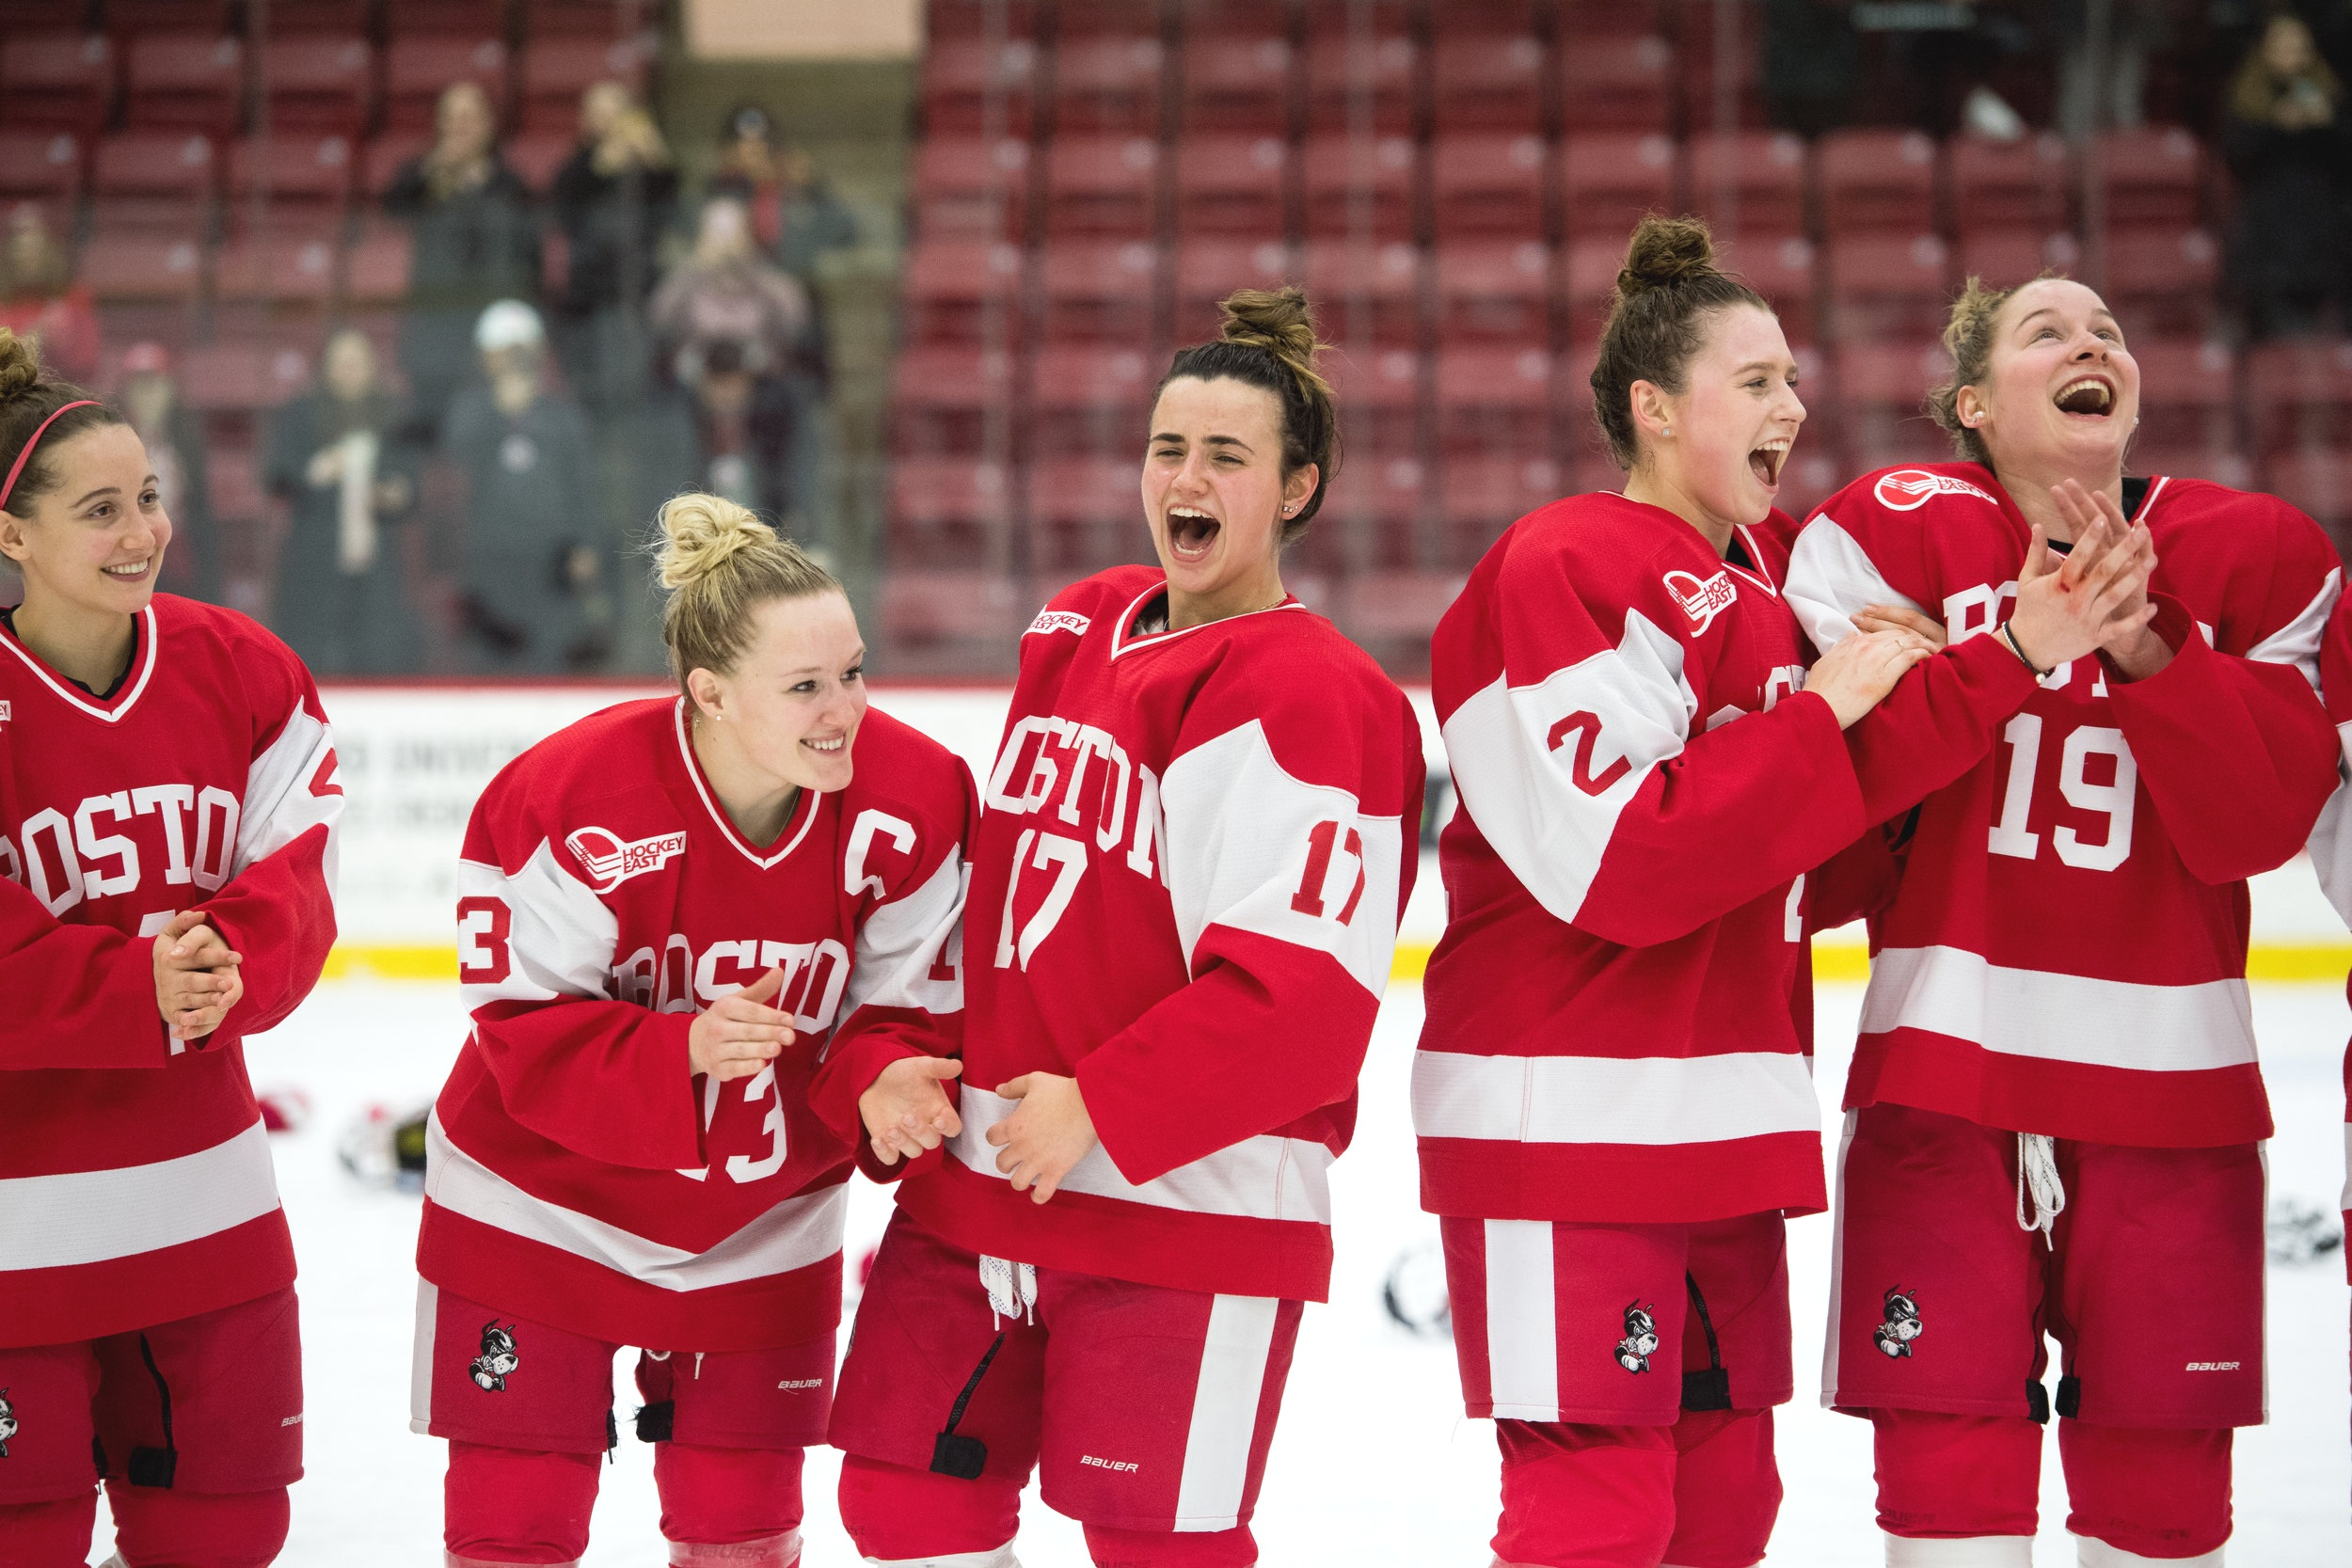 The Women's ice hockey team reacts to defeating Harvard at the 41st Women's Beanpot Tournament, their first Beanpot championship since becoming a varsity team, in 2005.